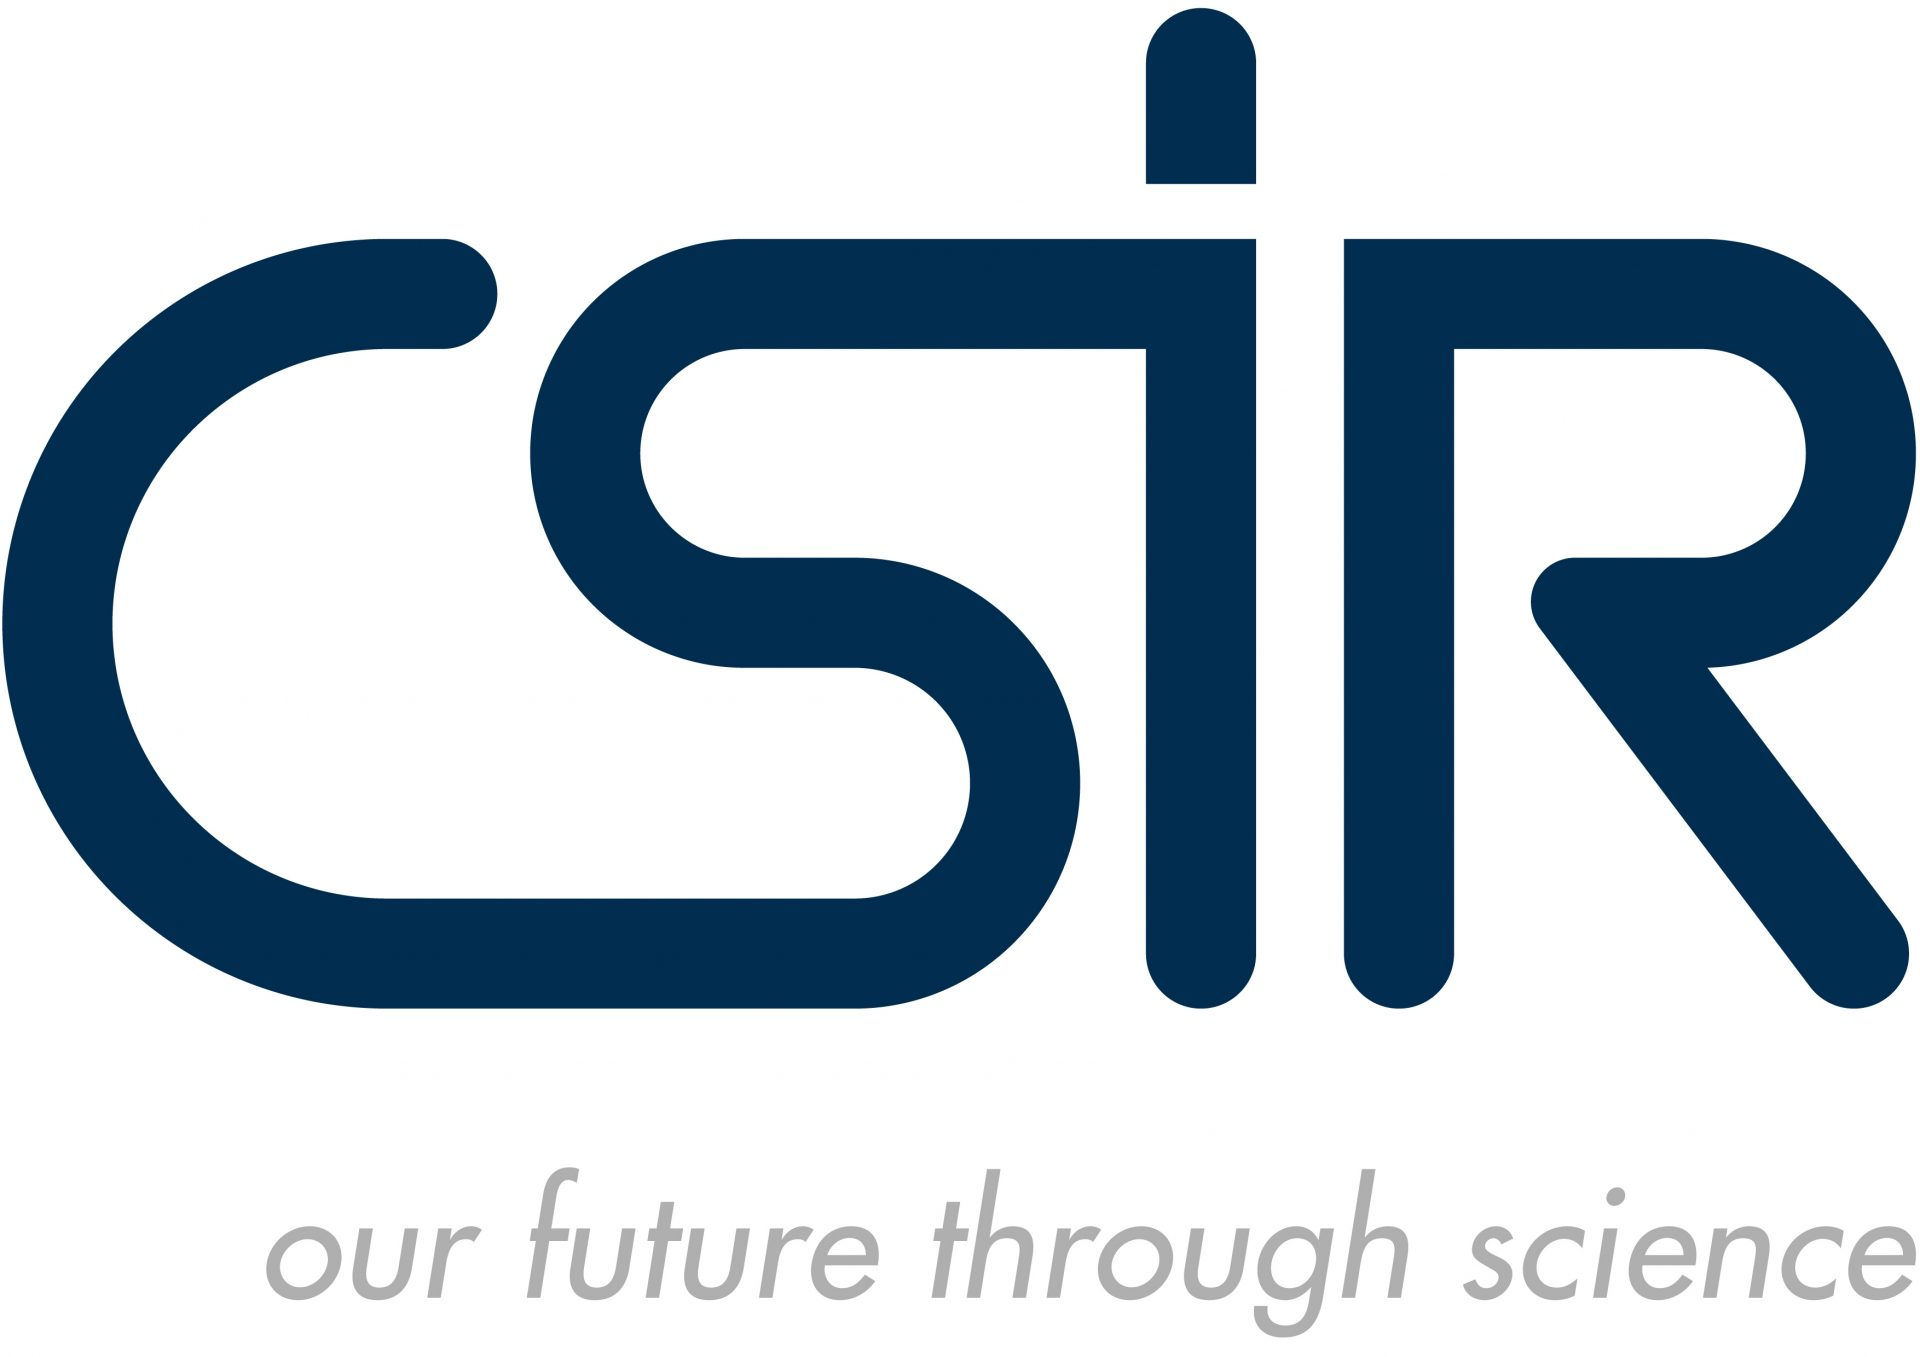 https://kaimara.co.za/wp-content/uploads/2017/12/CSIR-Logo.jpg